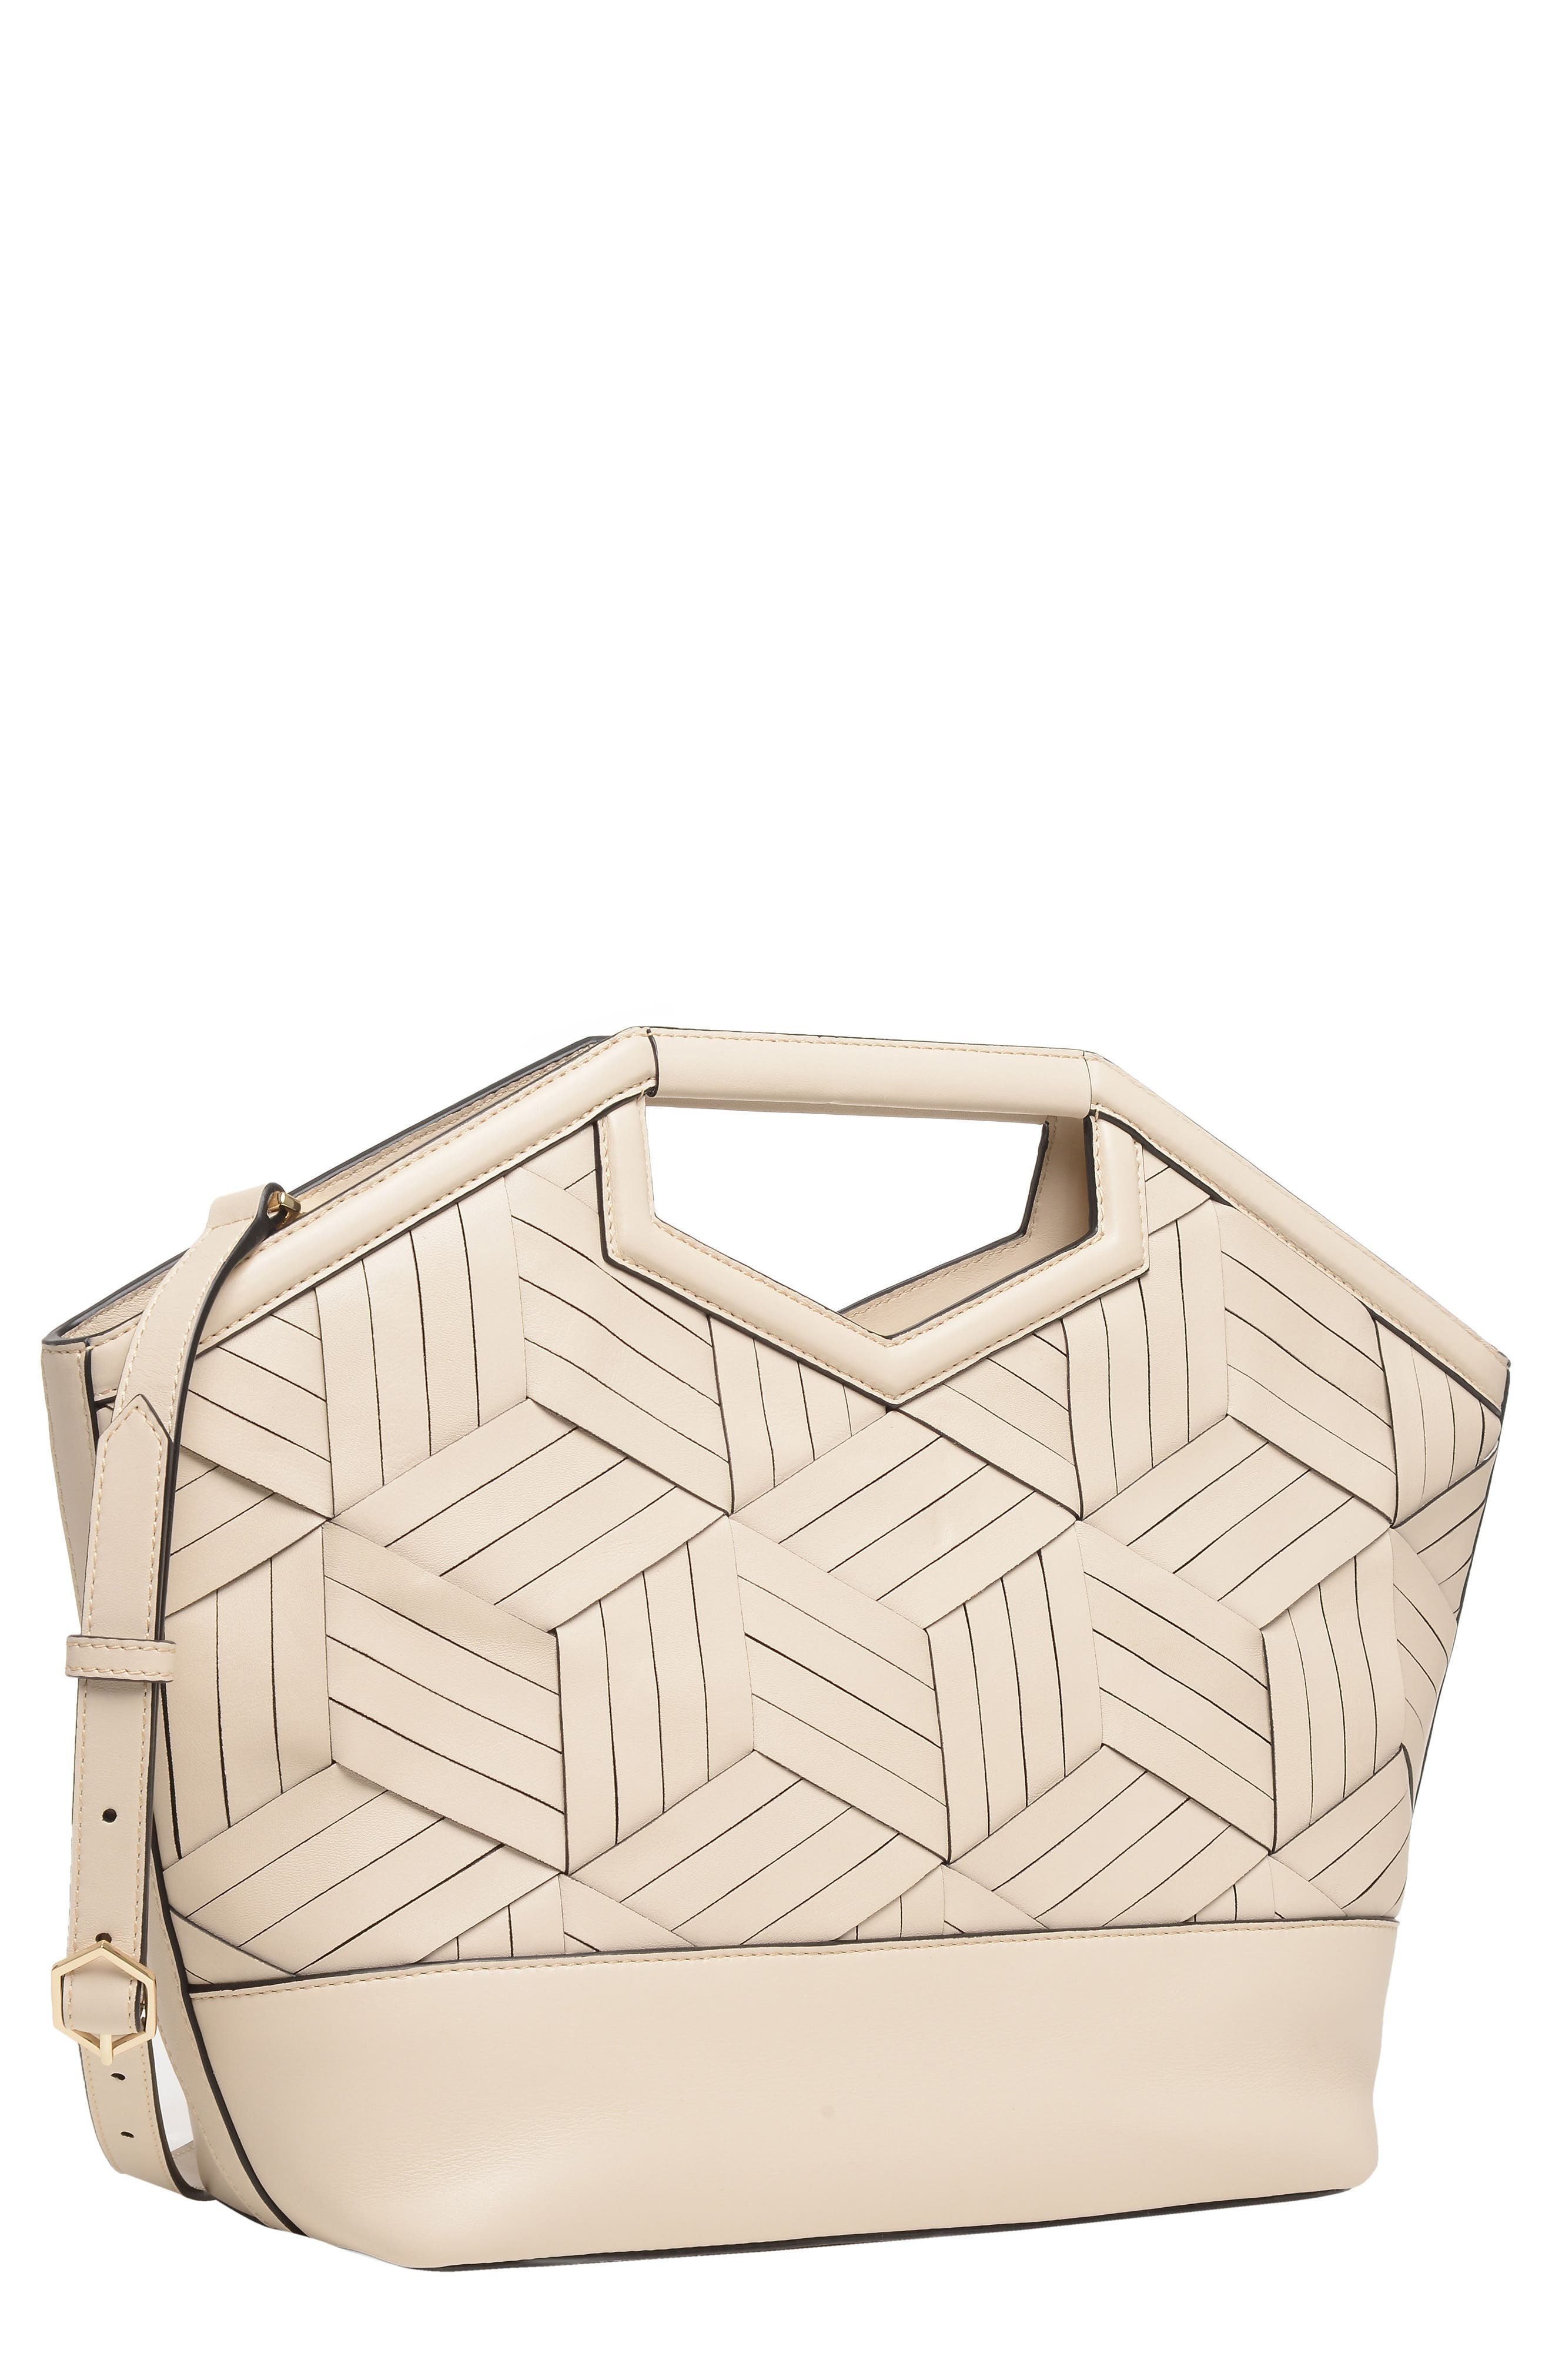 Sonder Leather Tote,                             Alternate thumbnail 4, color,                             Cement